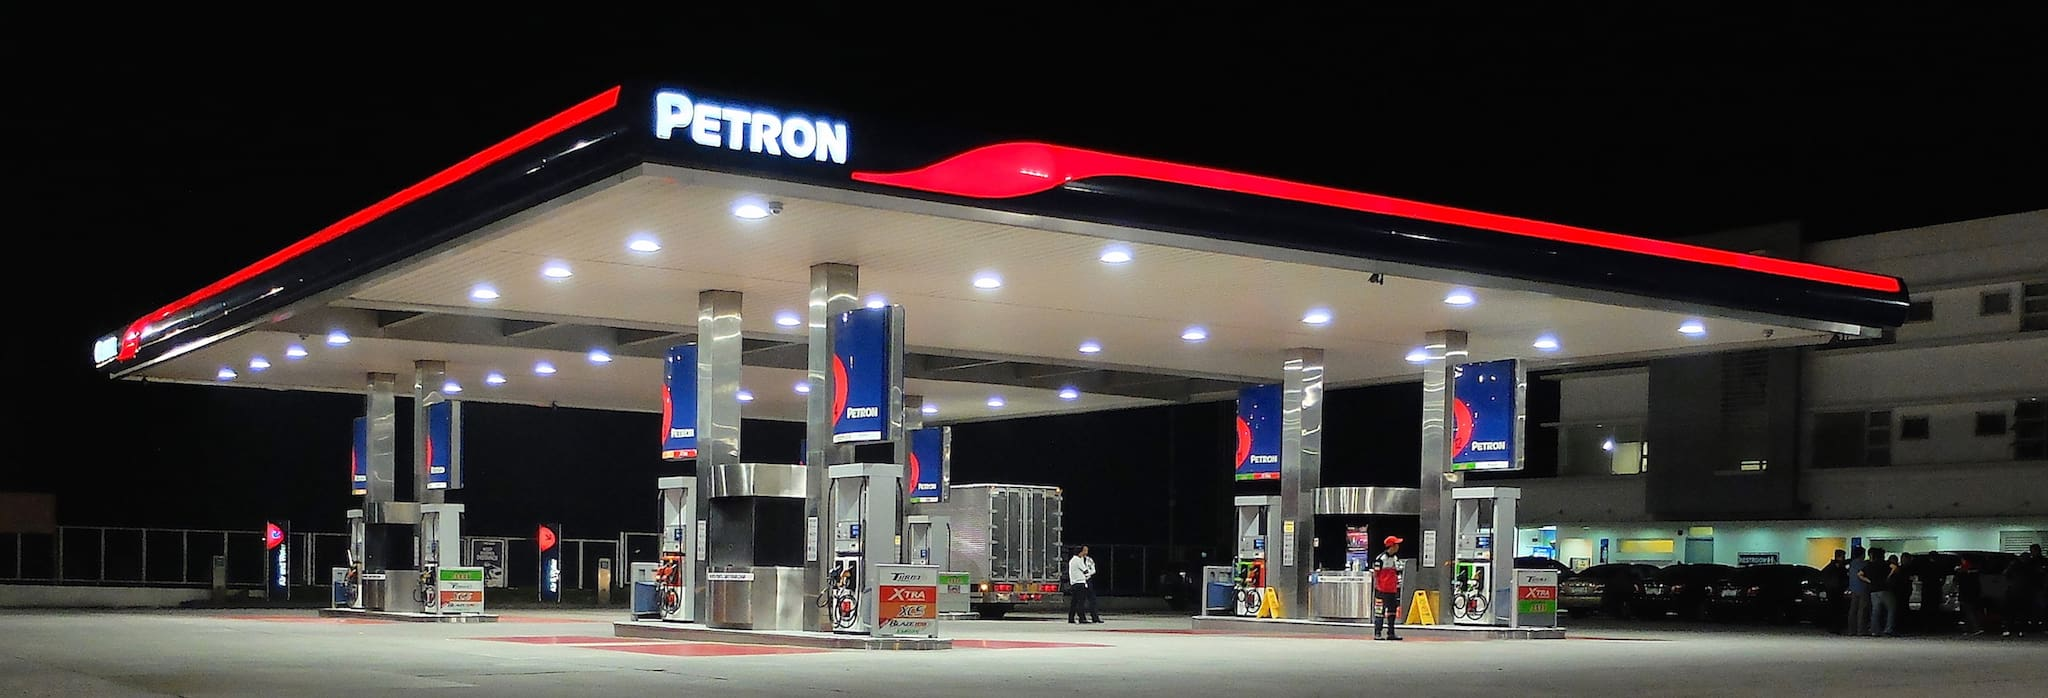 740 Petron Stations Accept Pantawid Pasada Card to Support Gov't Efforts